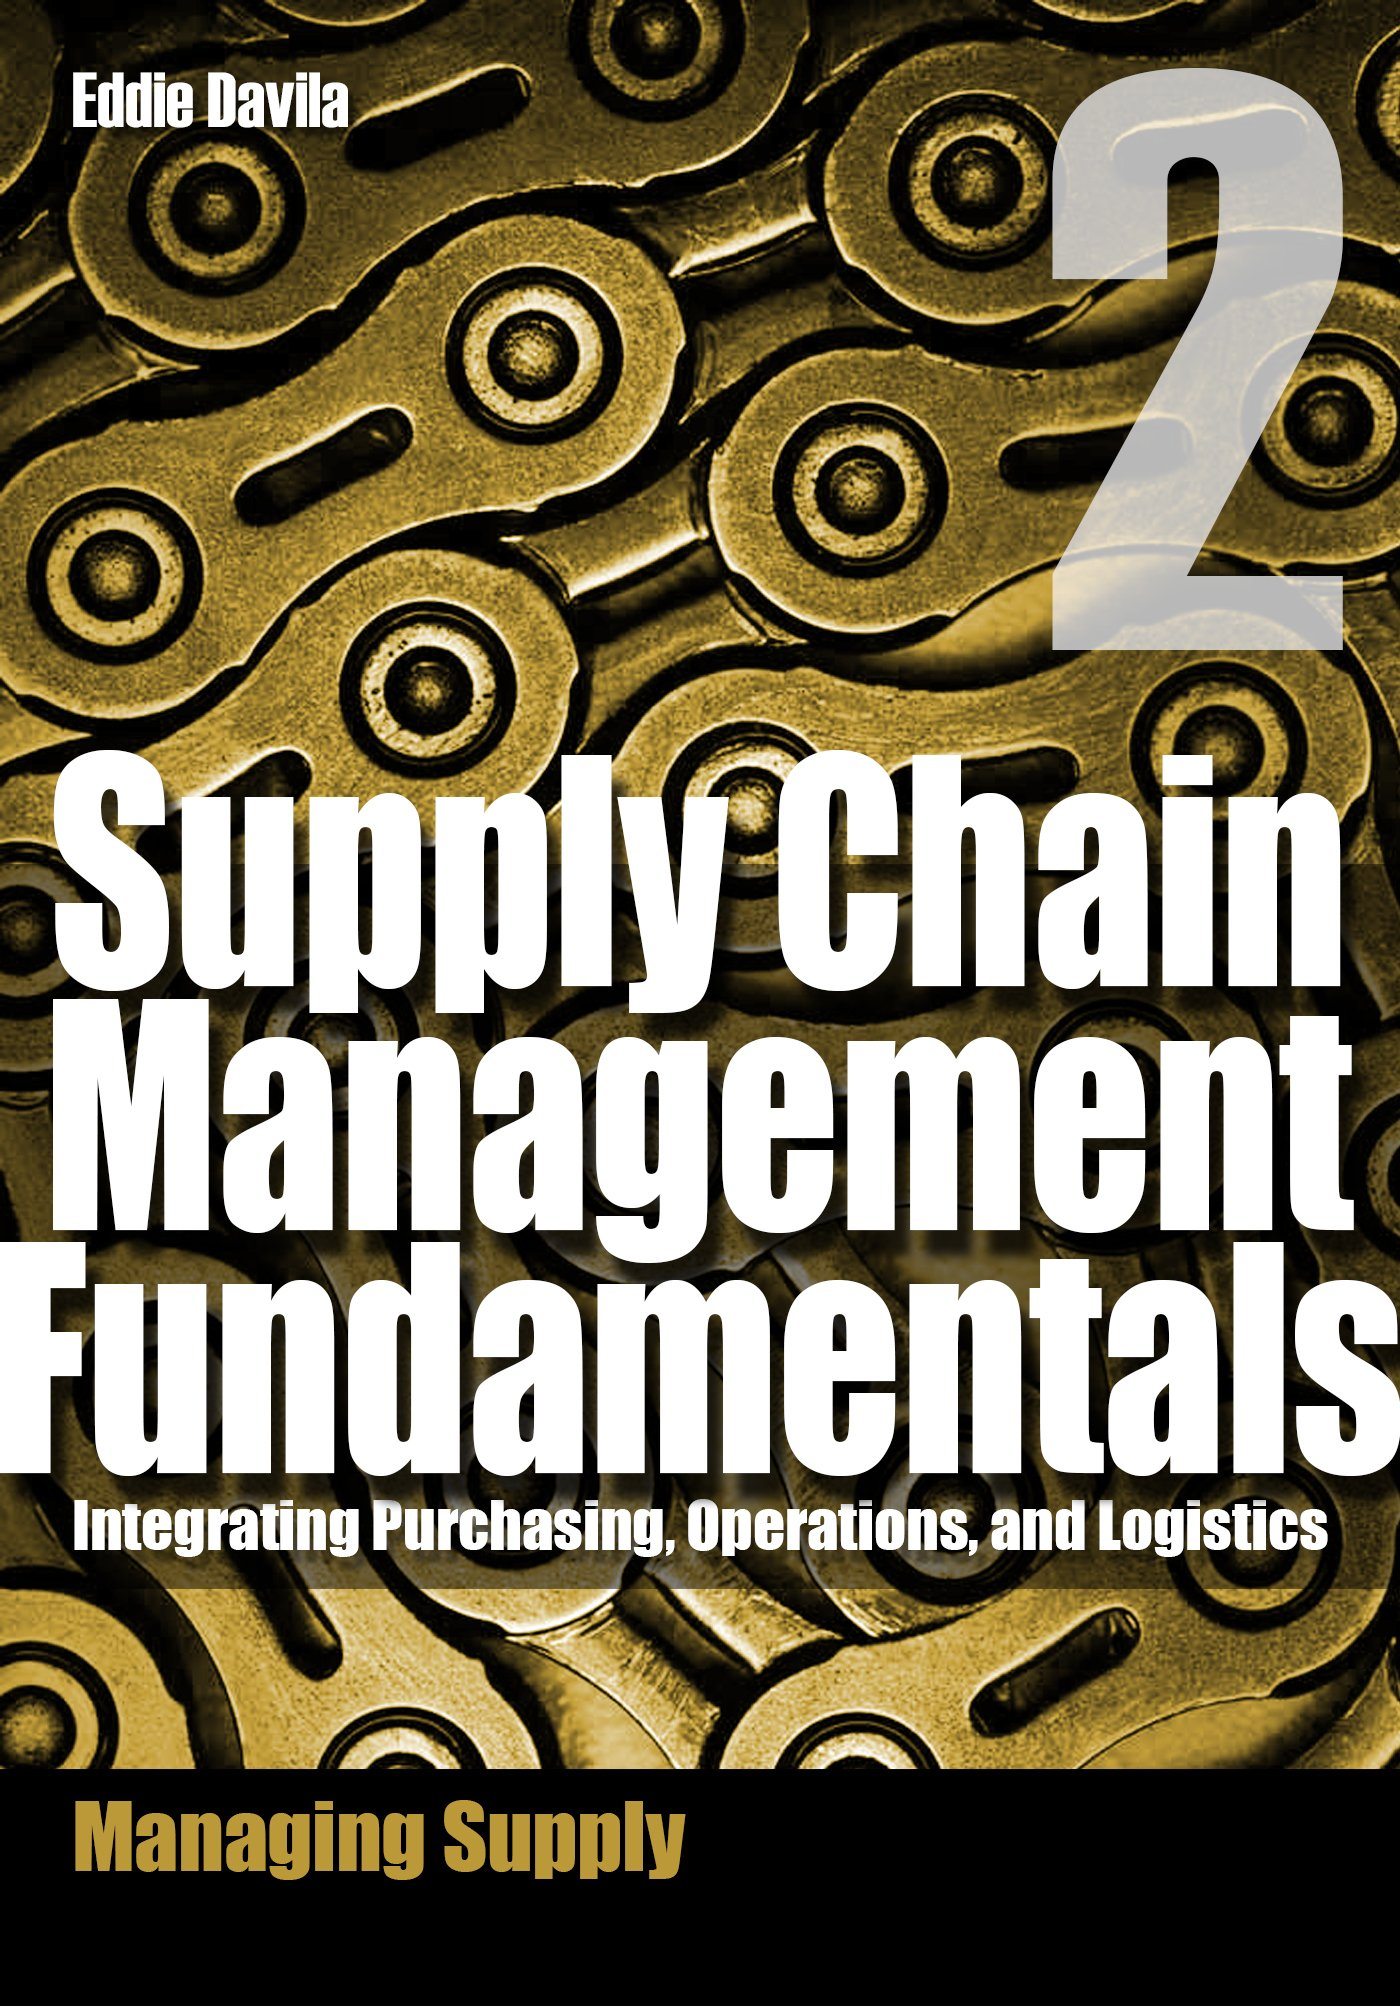 Supply Chain Management Fundamentals 2: Integrating Purchasing, Operations & Logistics: Module Two (Supply Chain Management Fundamentals: Integrating Purchasing, Operations & Logistics)